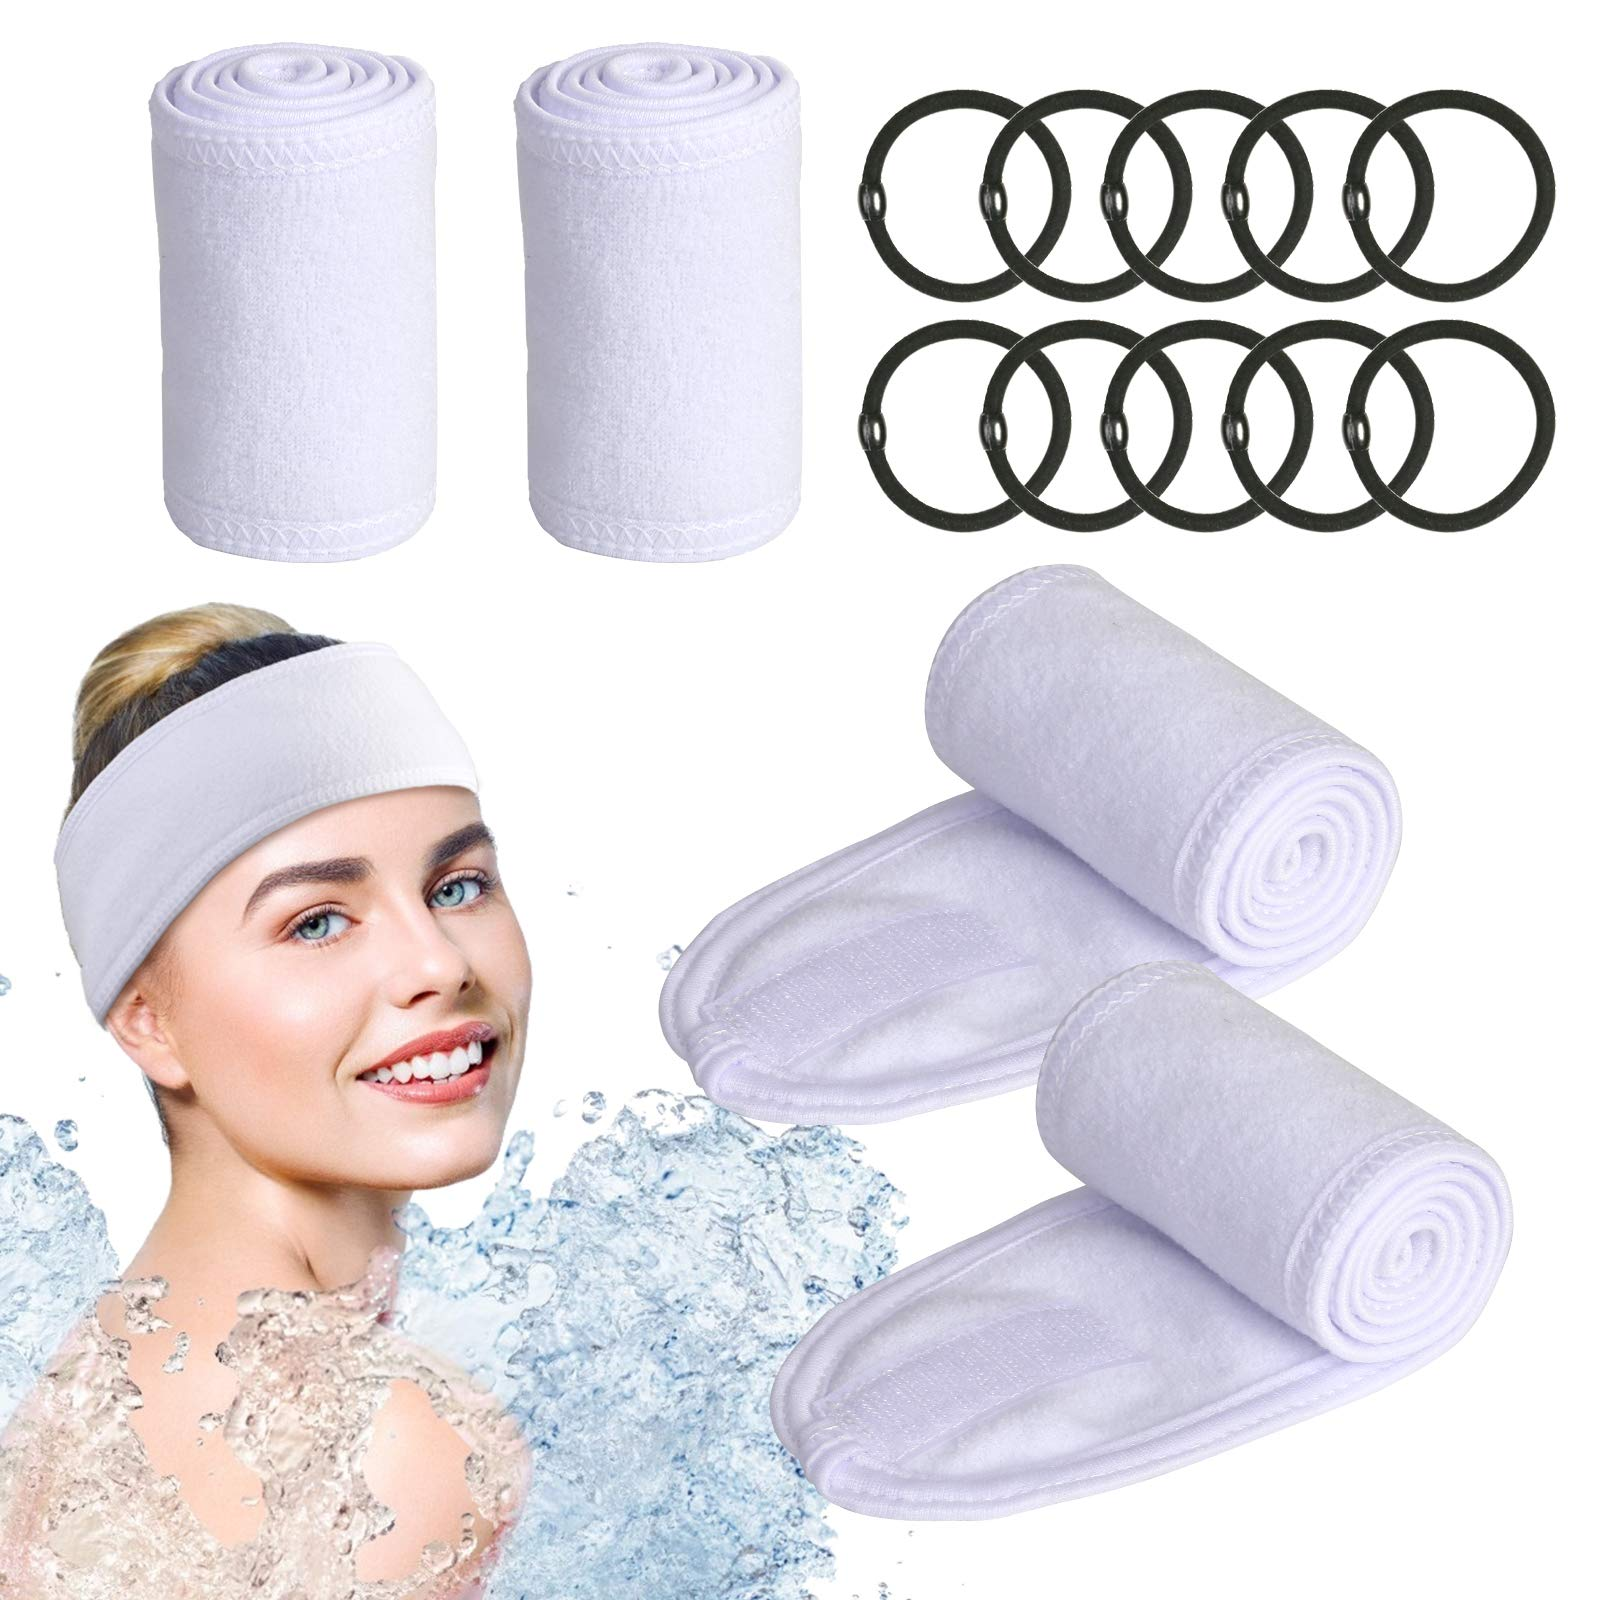 KATOOM Spa Headband 4pcs Makeup Headbands Facial Cosmetic Headband Terry Cloth Head Band with 10pcs Rubber Band for Shower Washing Face Yoga Sport Make Up (White)